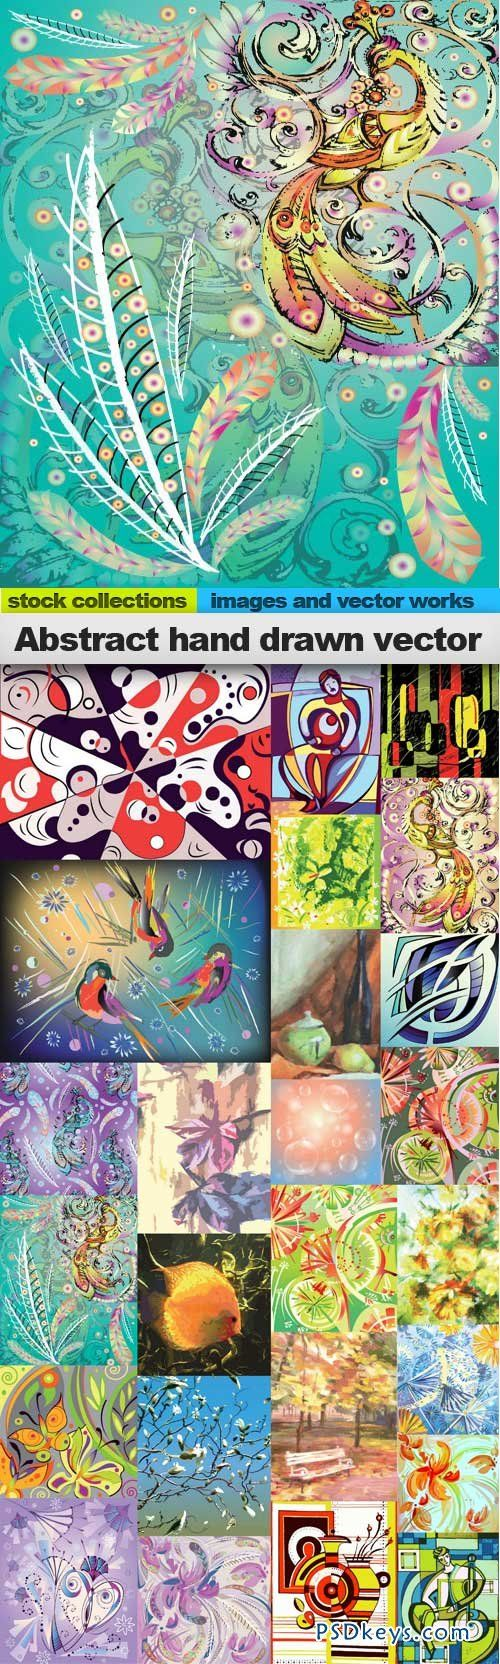 Abstract hand drawn vectors 25xeps psd pinterest abstract hand drawn vectors 25xeps gumiabroncs Images